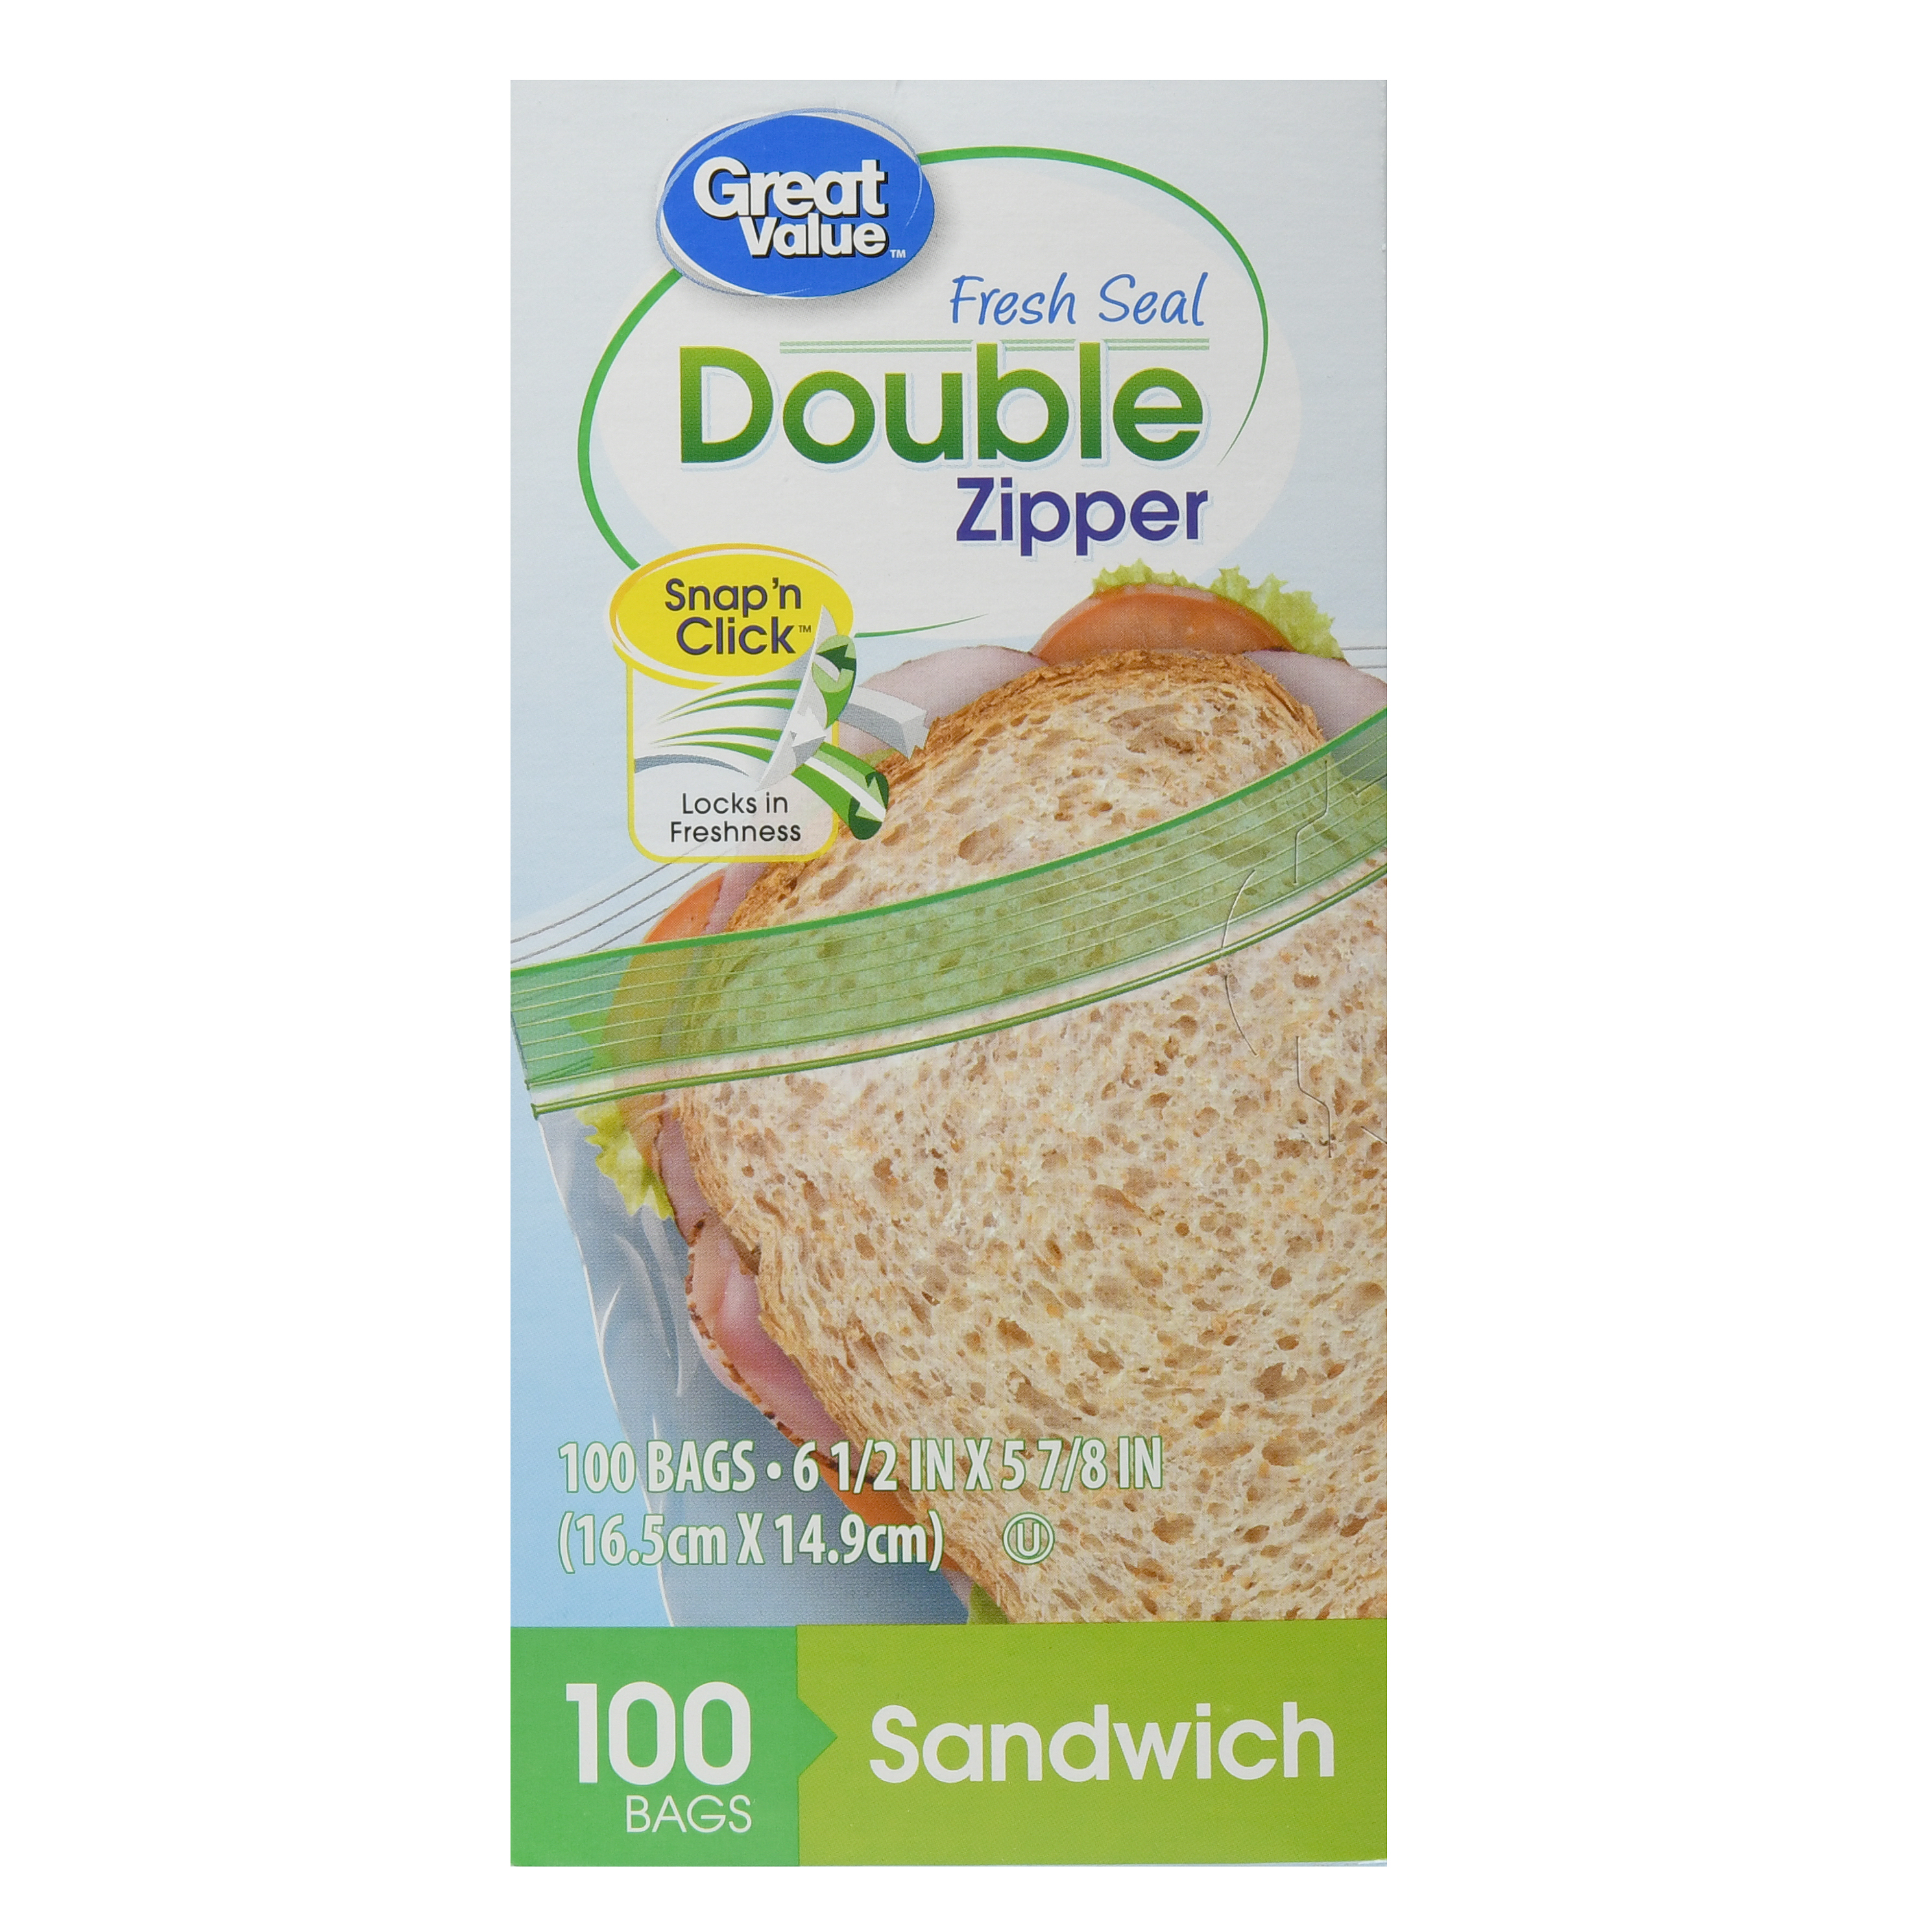 Great value Double Zipper Food Storage Bags, Sandwich, 100 Count